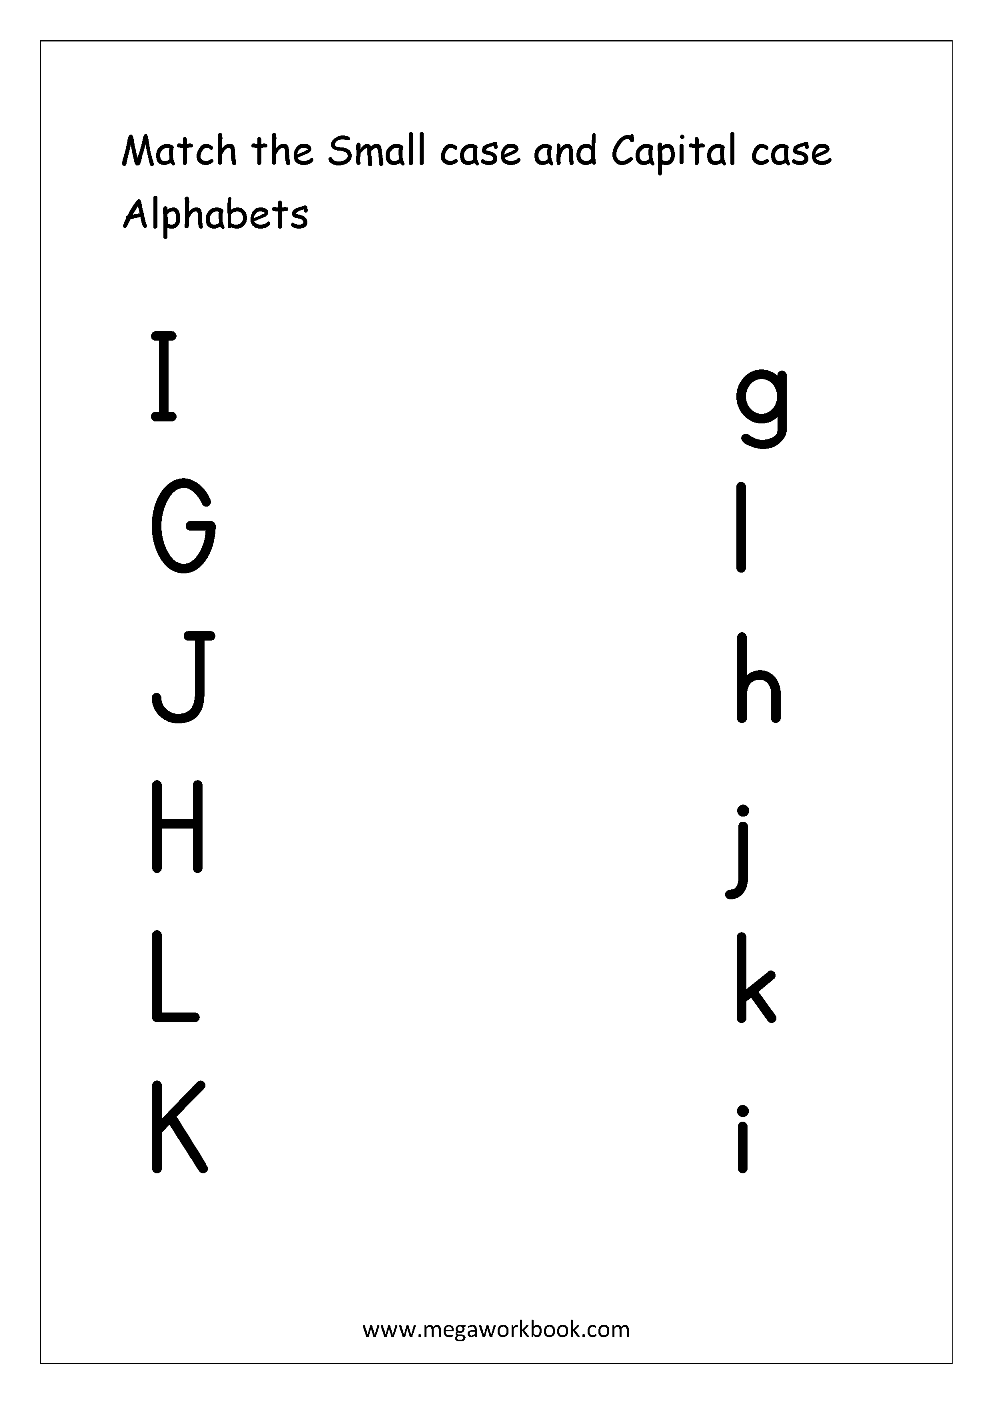 English Worksheet - Match Small And Capital Letters In 2020 pertaining to Alphabet Matching Worksheets For Preschoolers